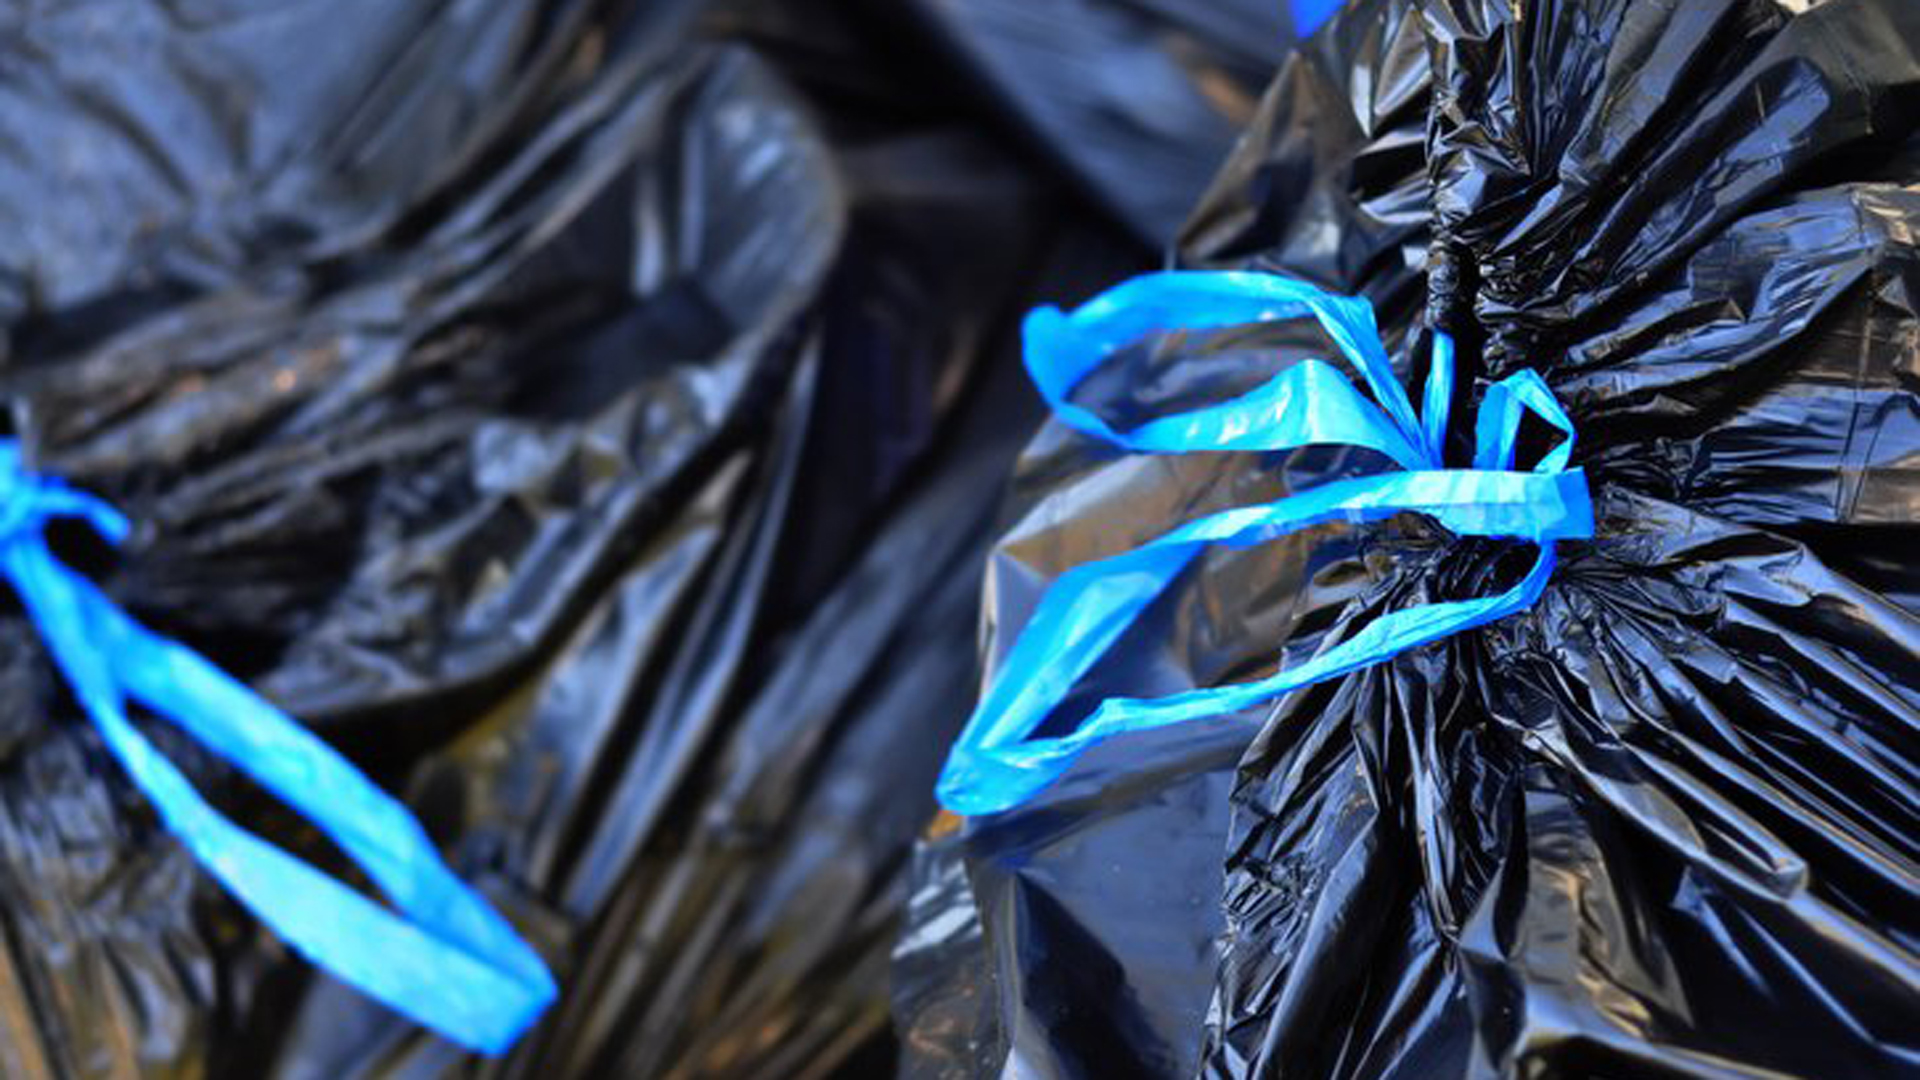 Black garbage bags are seen in file photo. (Credit: Getty Images)